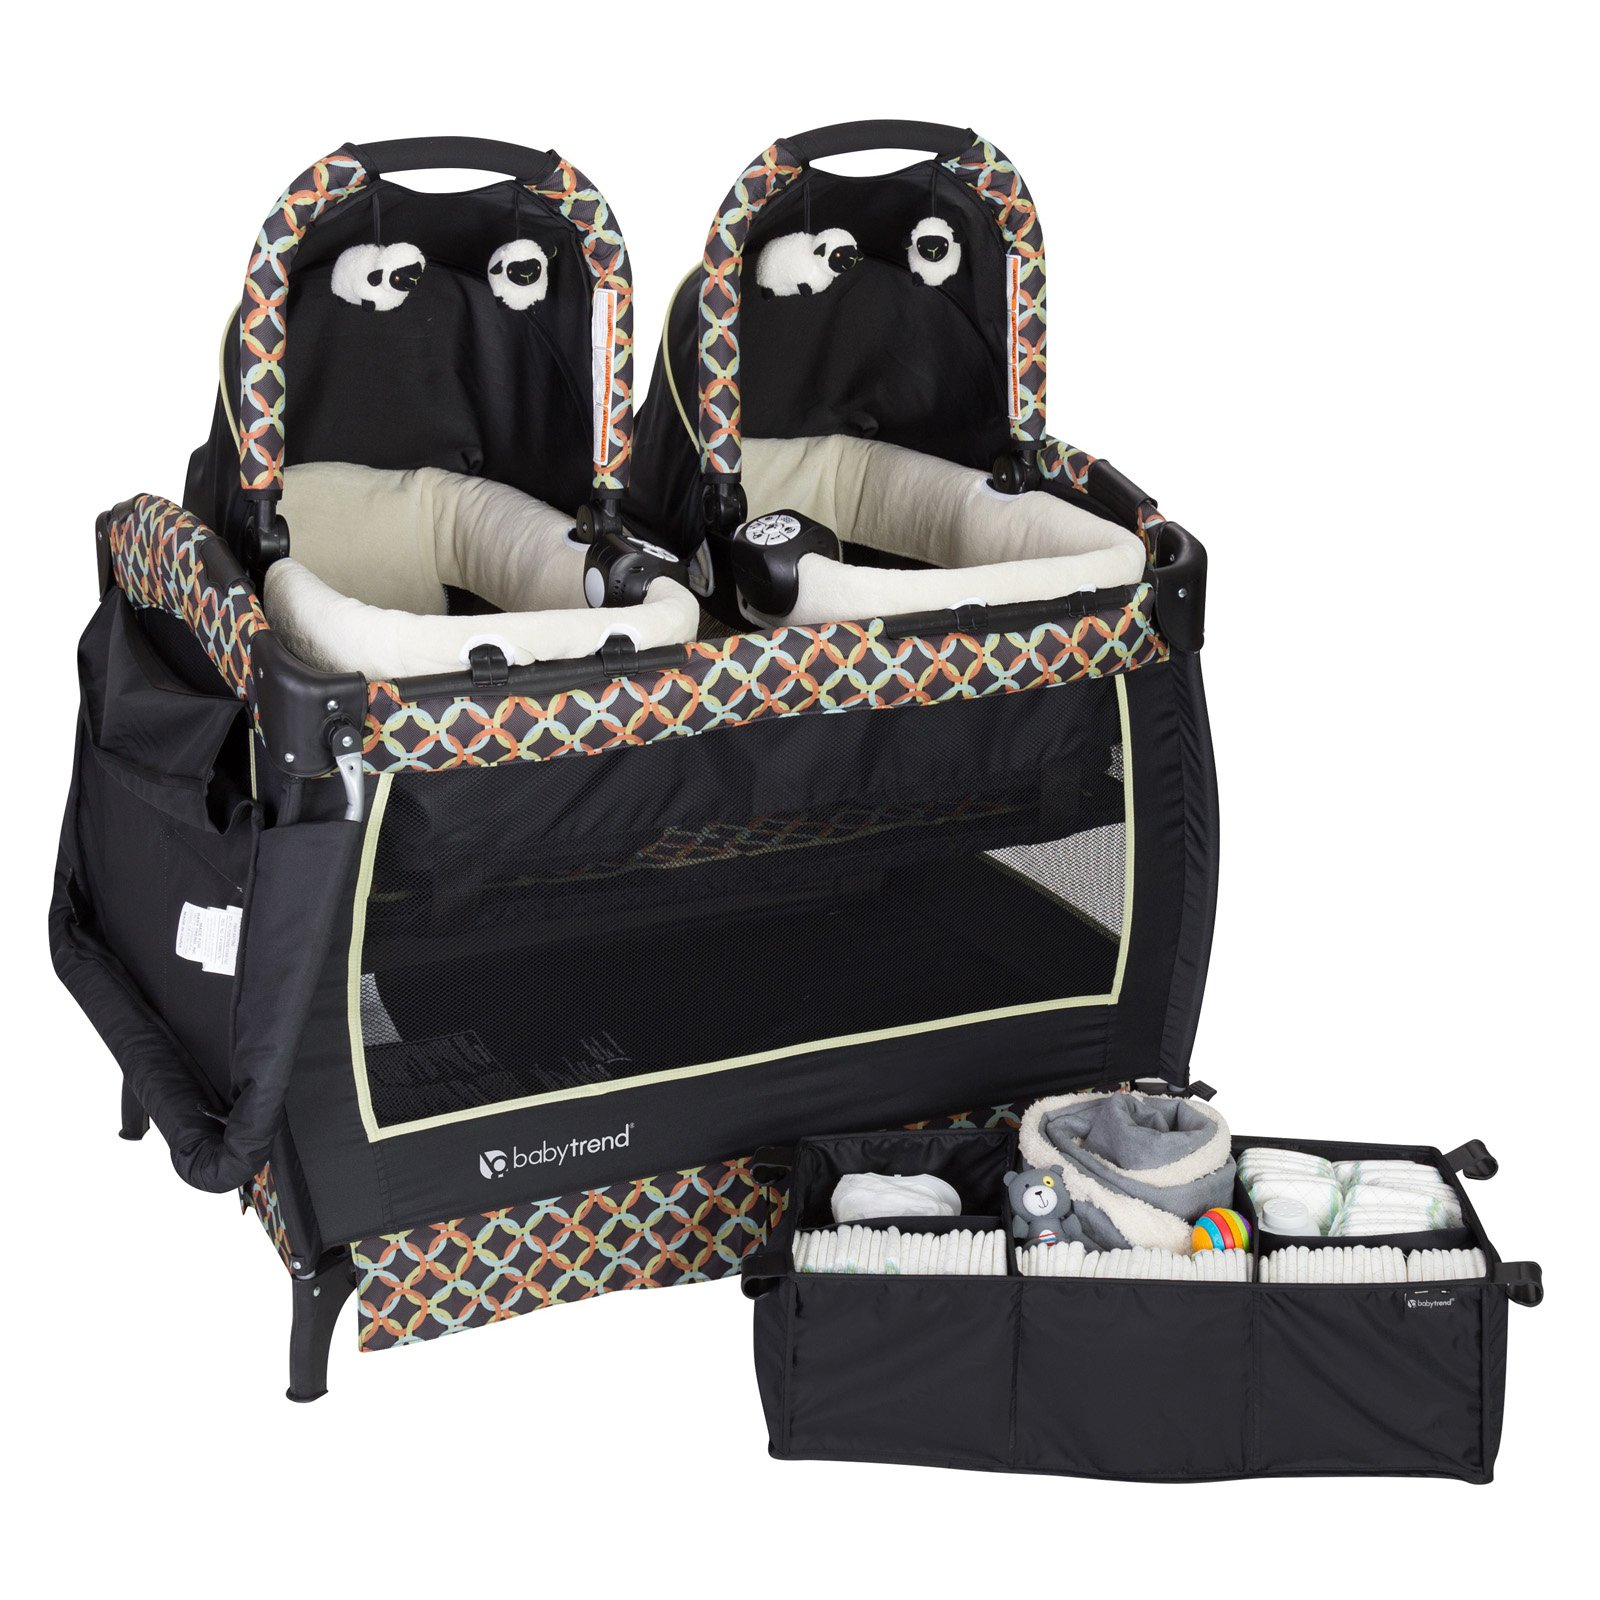 Baby Trend Twins Nursery Center Play Pen, Goodnight Forest by Baby Trend